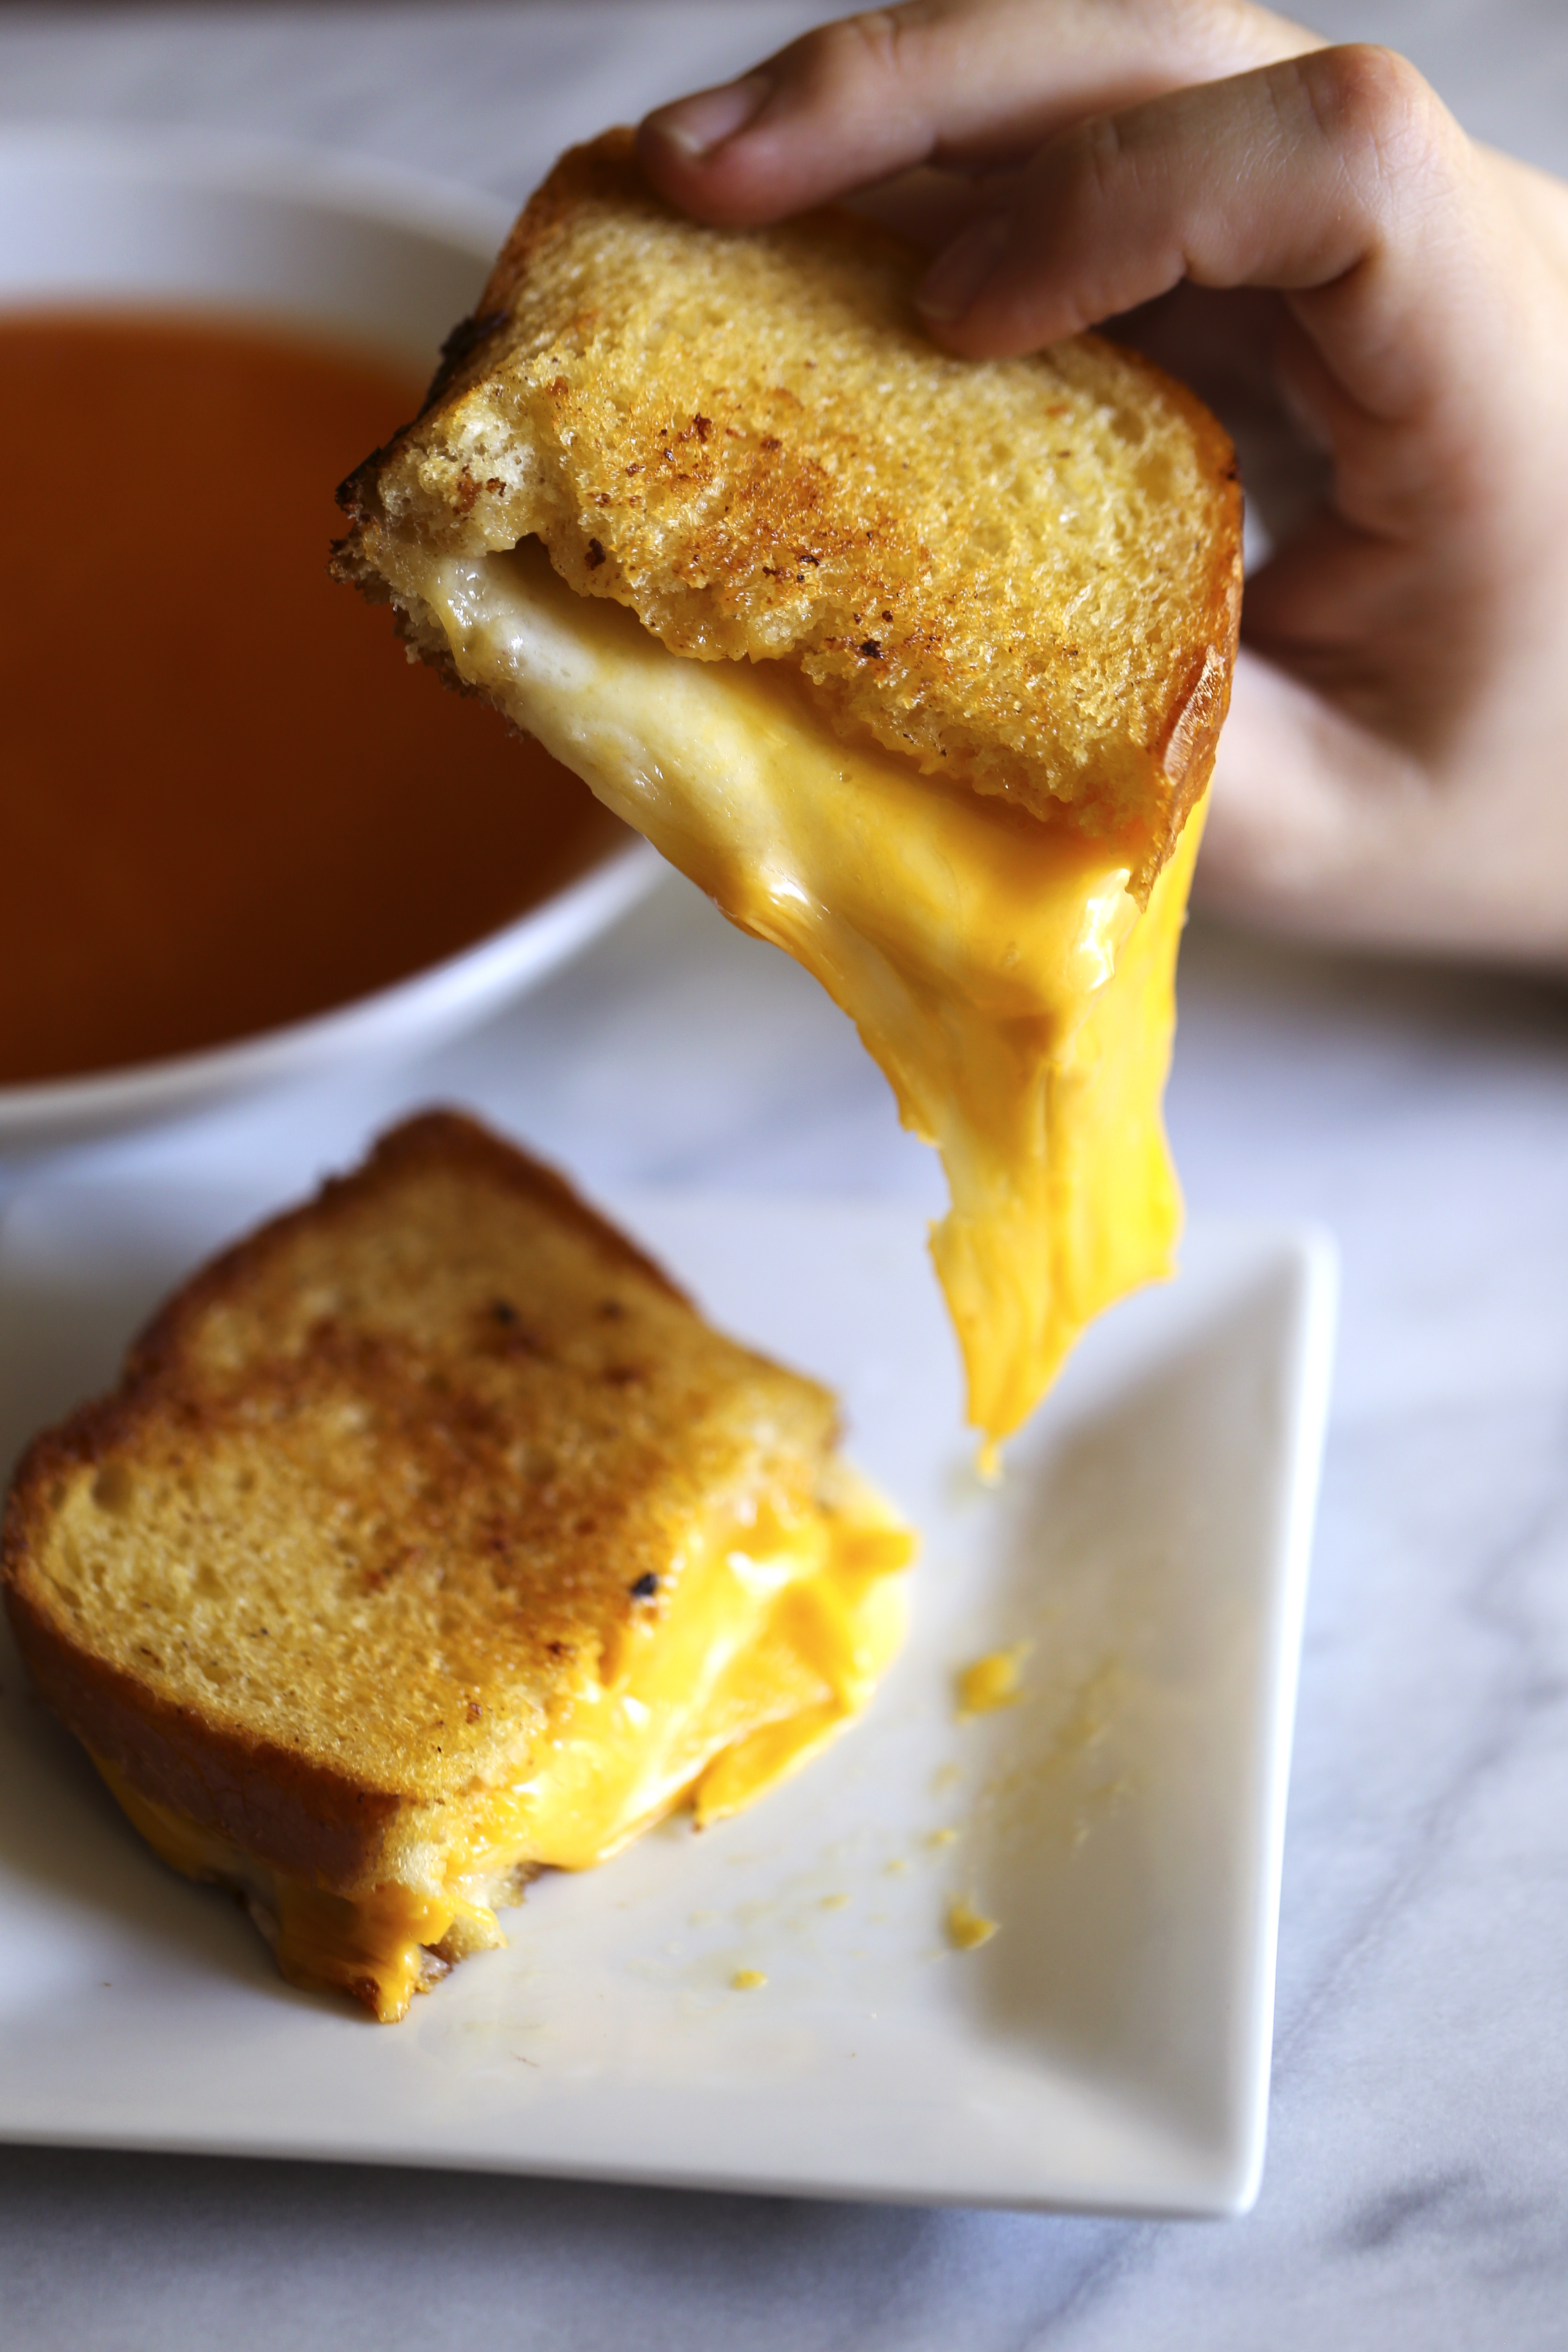 A recreation of Danyele McPherson's grilled cheese sandwich.